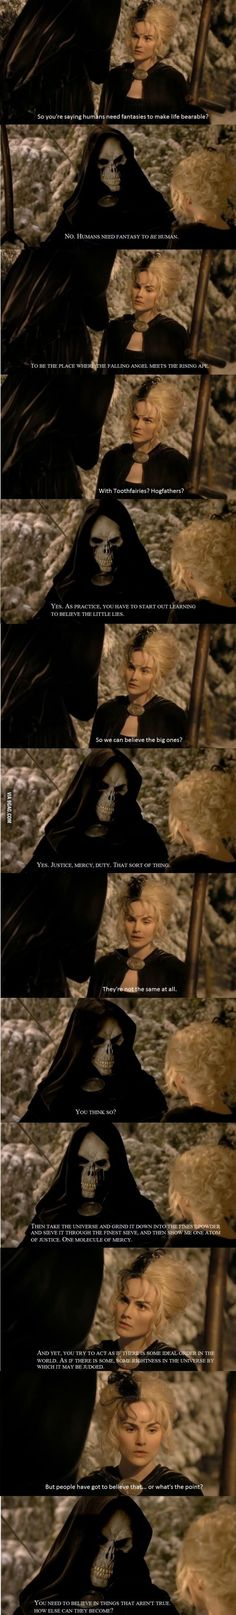 Death, Discworld. One of my favorite speech in movies. It touched something deep in humans.